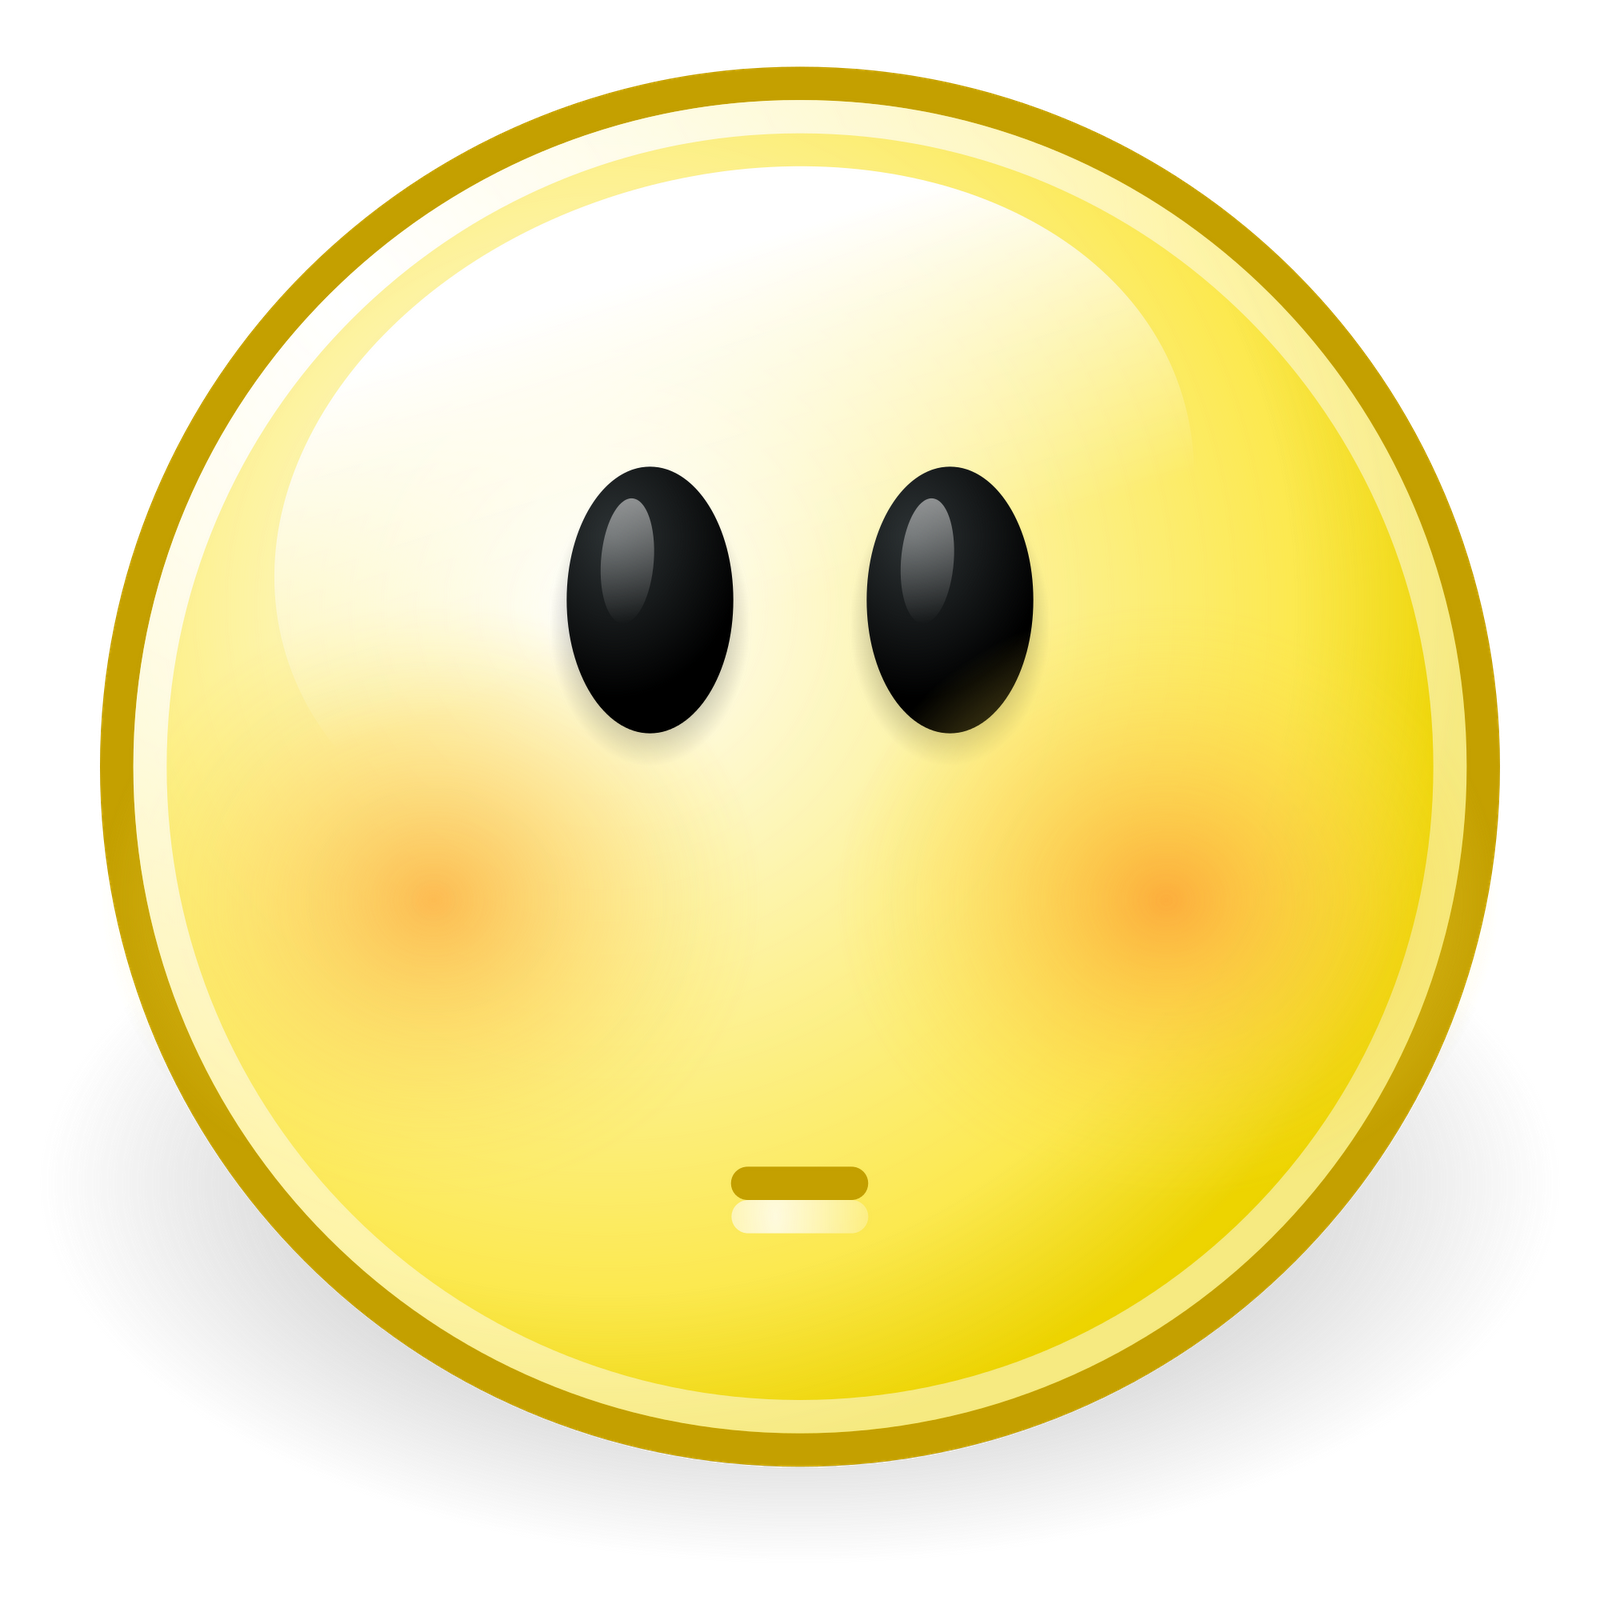 Shy clipart shy face. Clip art embarrassed group